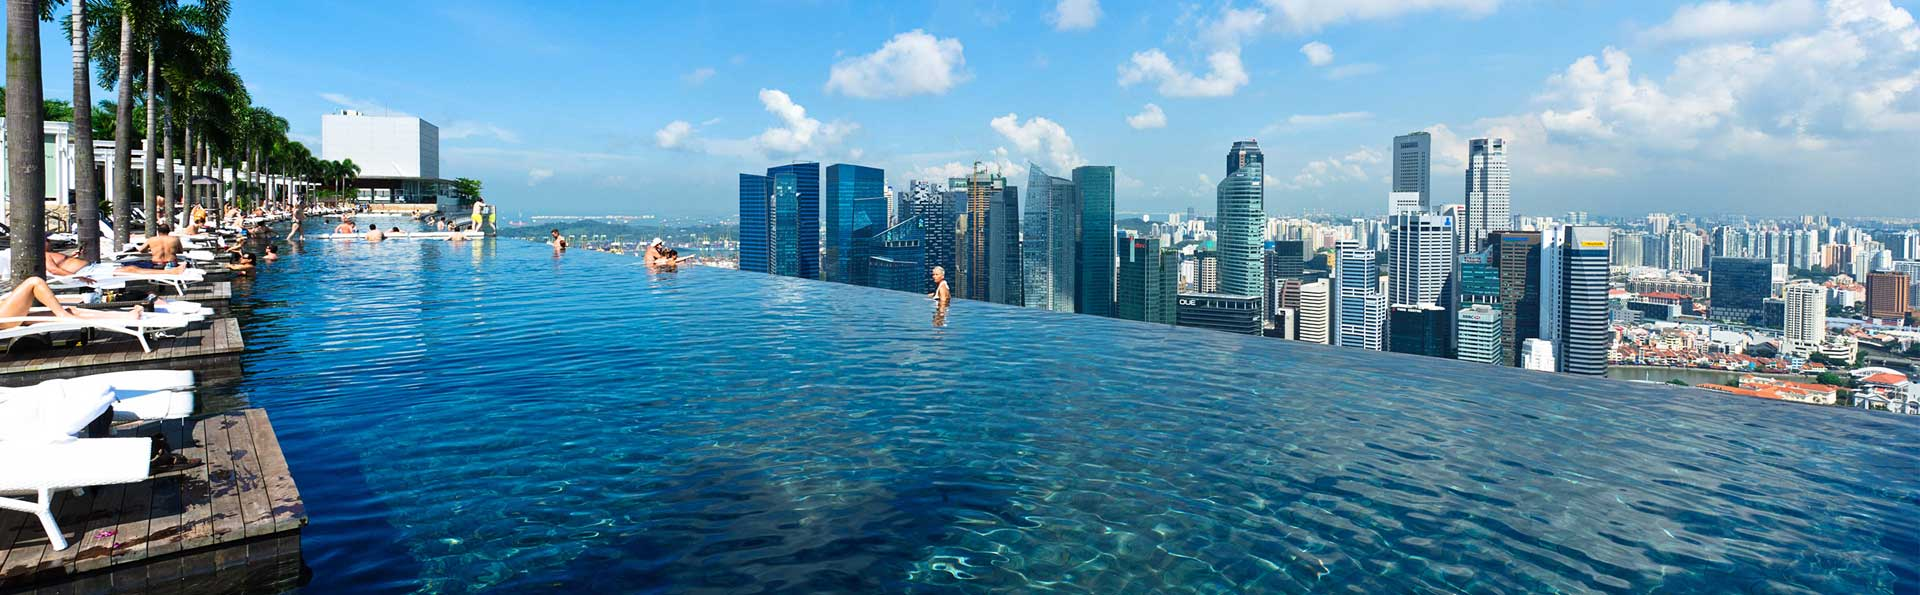 Infinity Pool with View of Singapore City